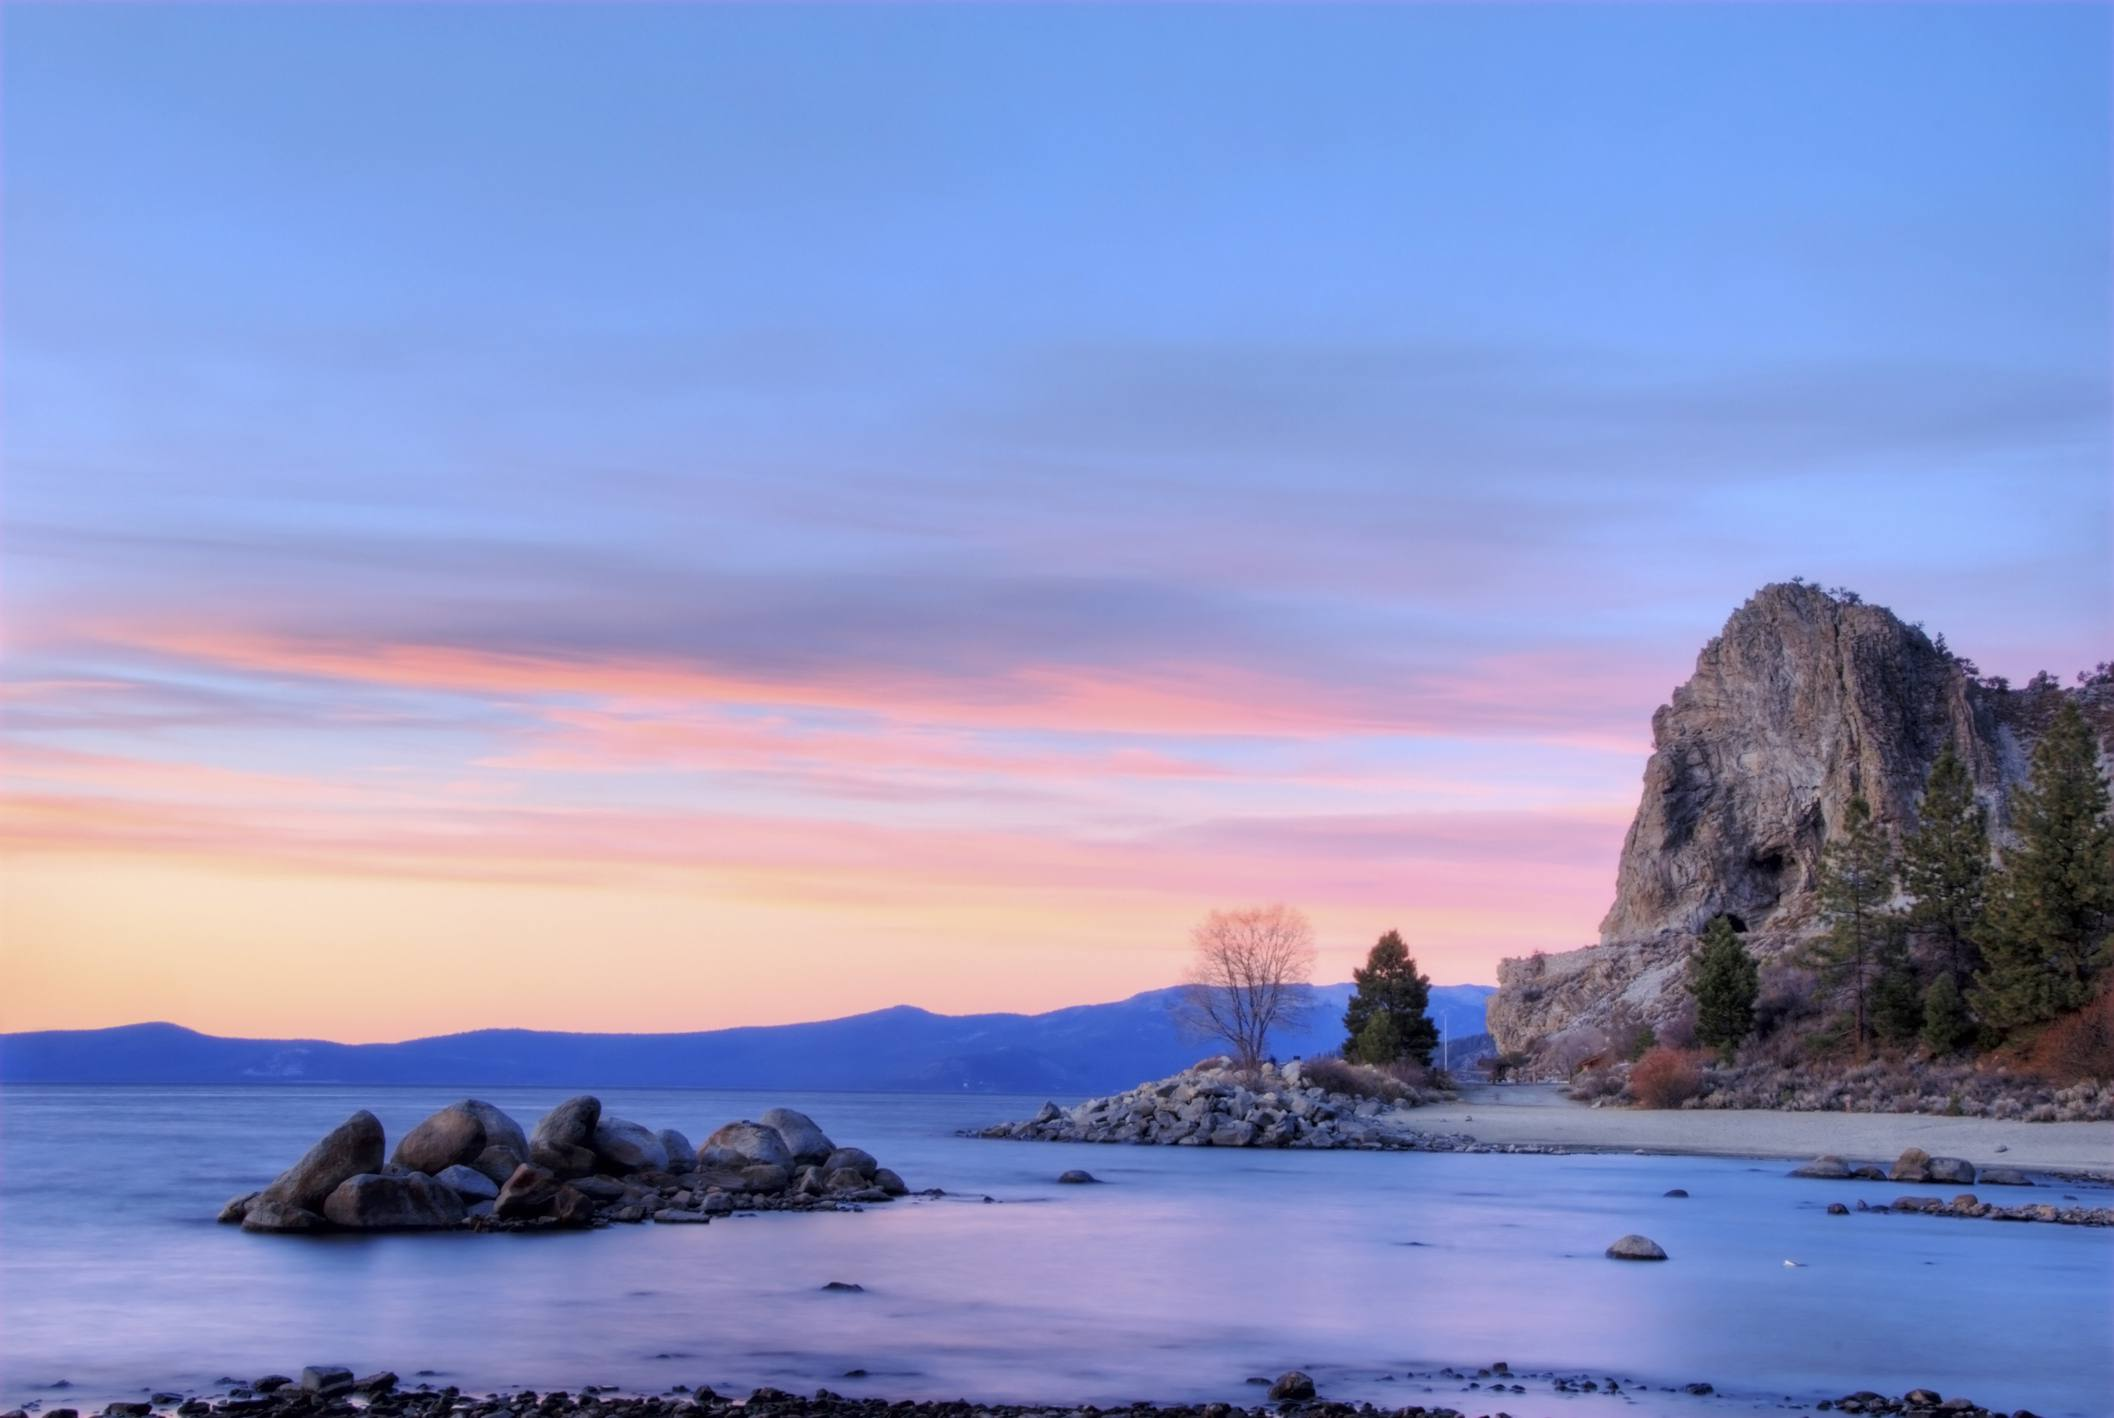 Cave Rock at sunset in Lake Tahoe, Nevada.